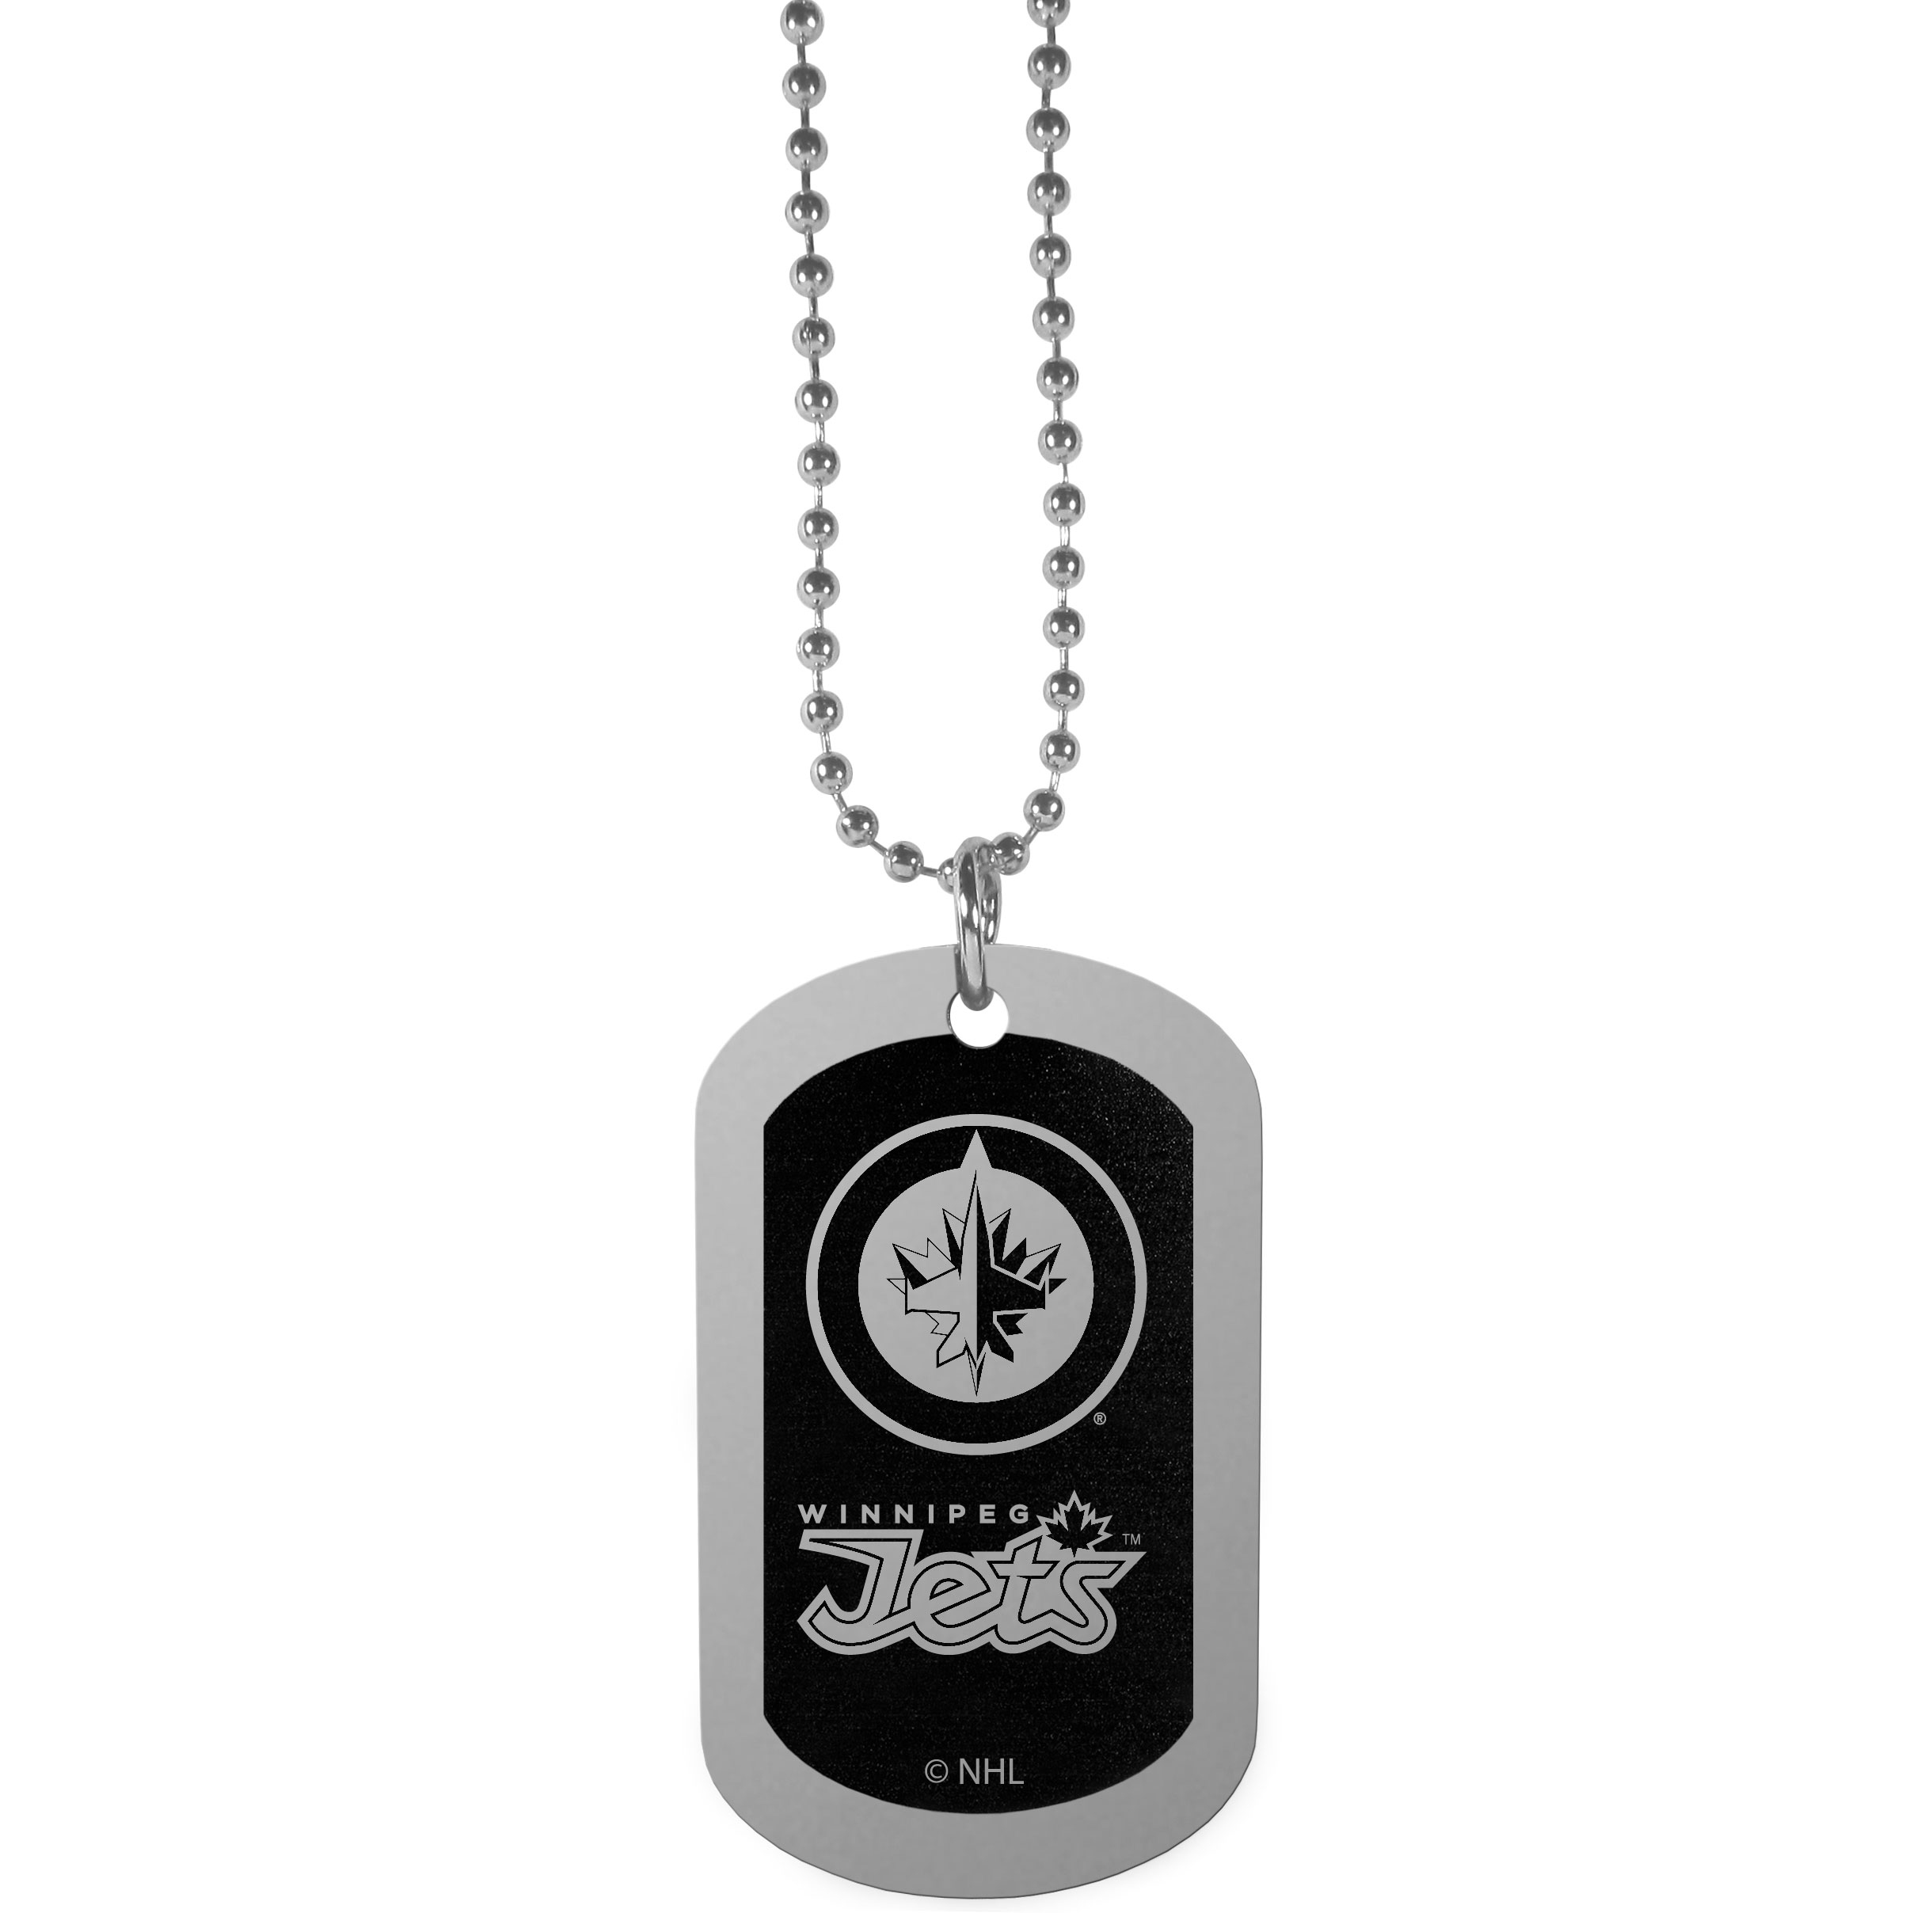 Winnipeg Jets™ Chrome Tag Necklace - Dog tag necklaces are a fashion statement that is here to stay. The sporty version of the classic tag features a black printed over a high polish tag to create a bold and sporty look. The tag comes on a 26 inch ball chain with a ball and joint clasp. Any Winnipeg Jets™ would be proud to wear this attractive fashion accessory.